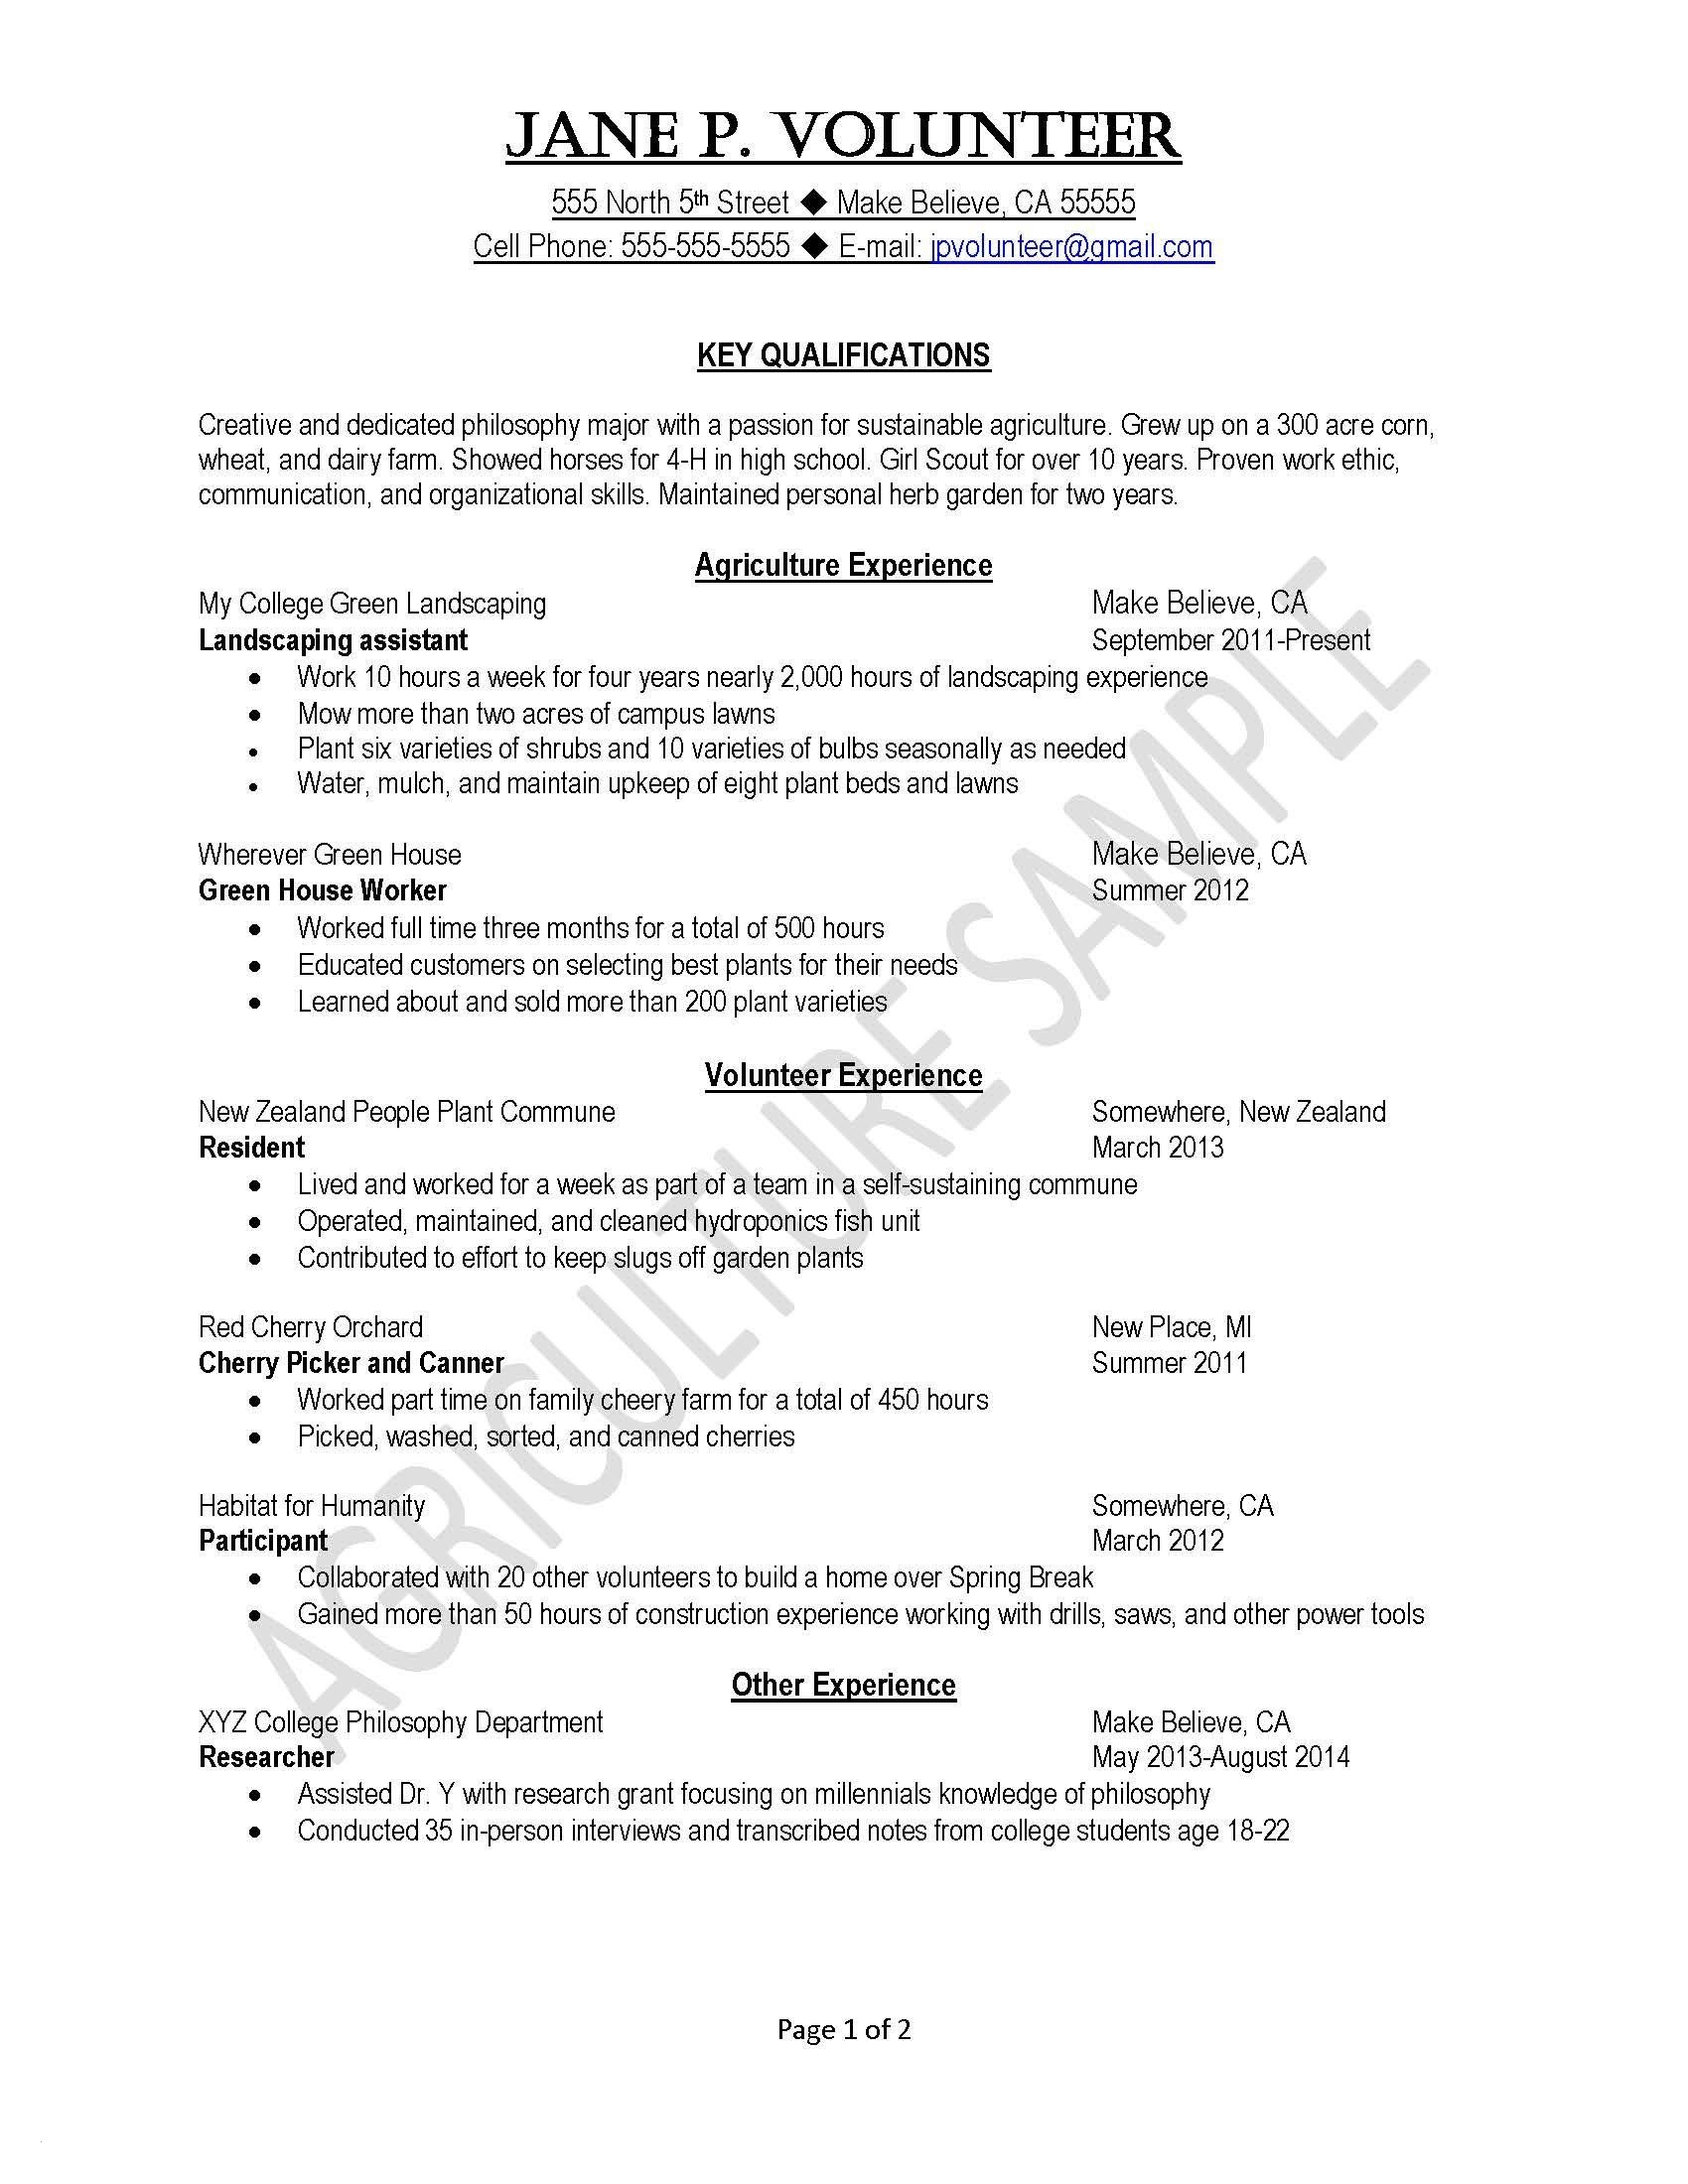 Resume Template for College Freshmen - Resume Templates for College Applications Awesome Awesome Sample